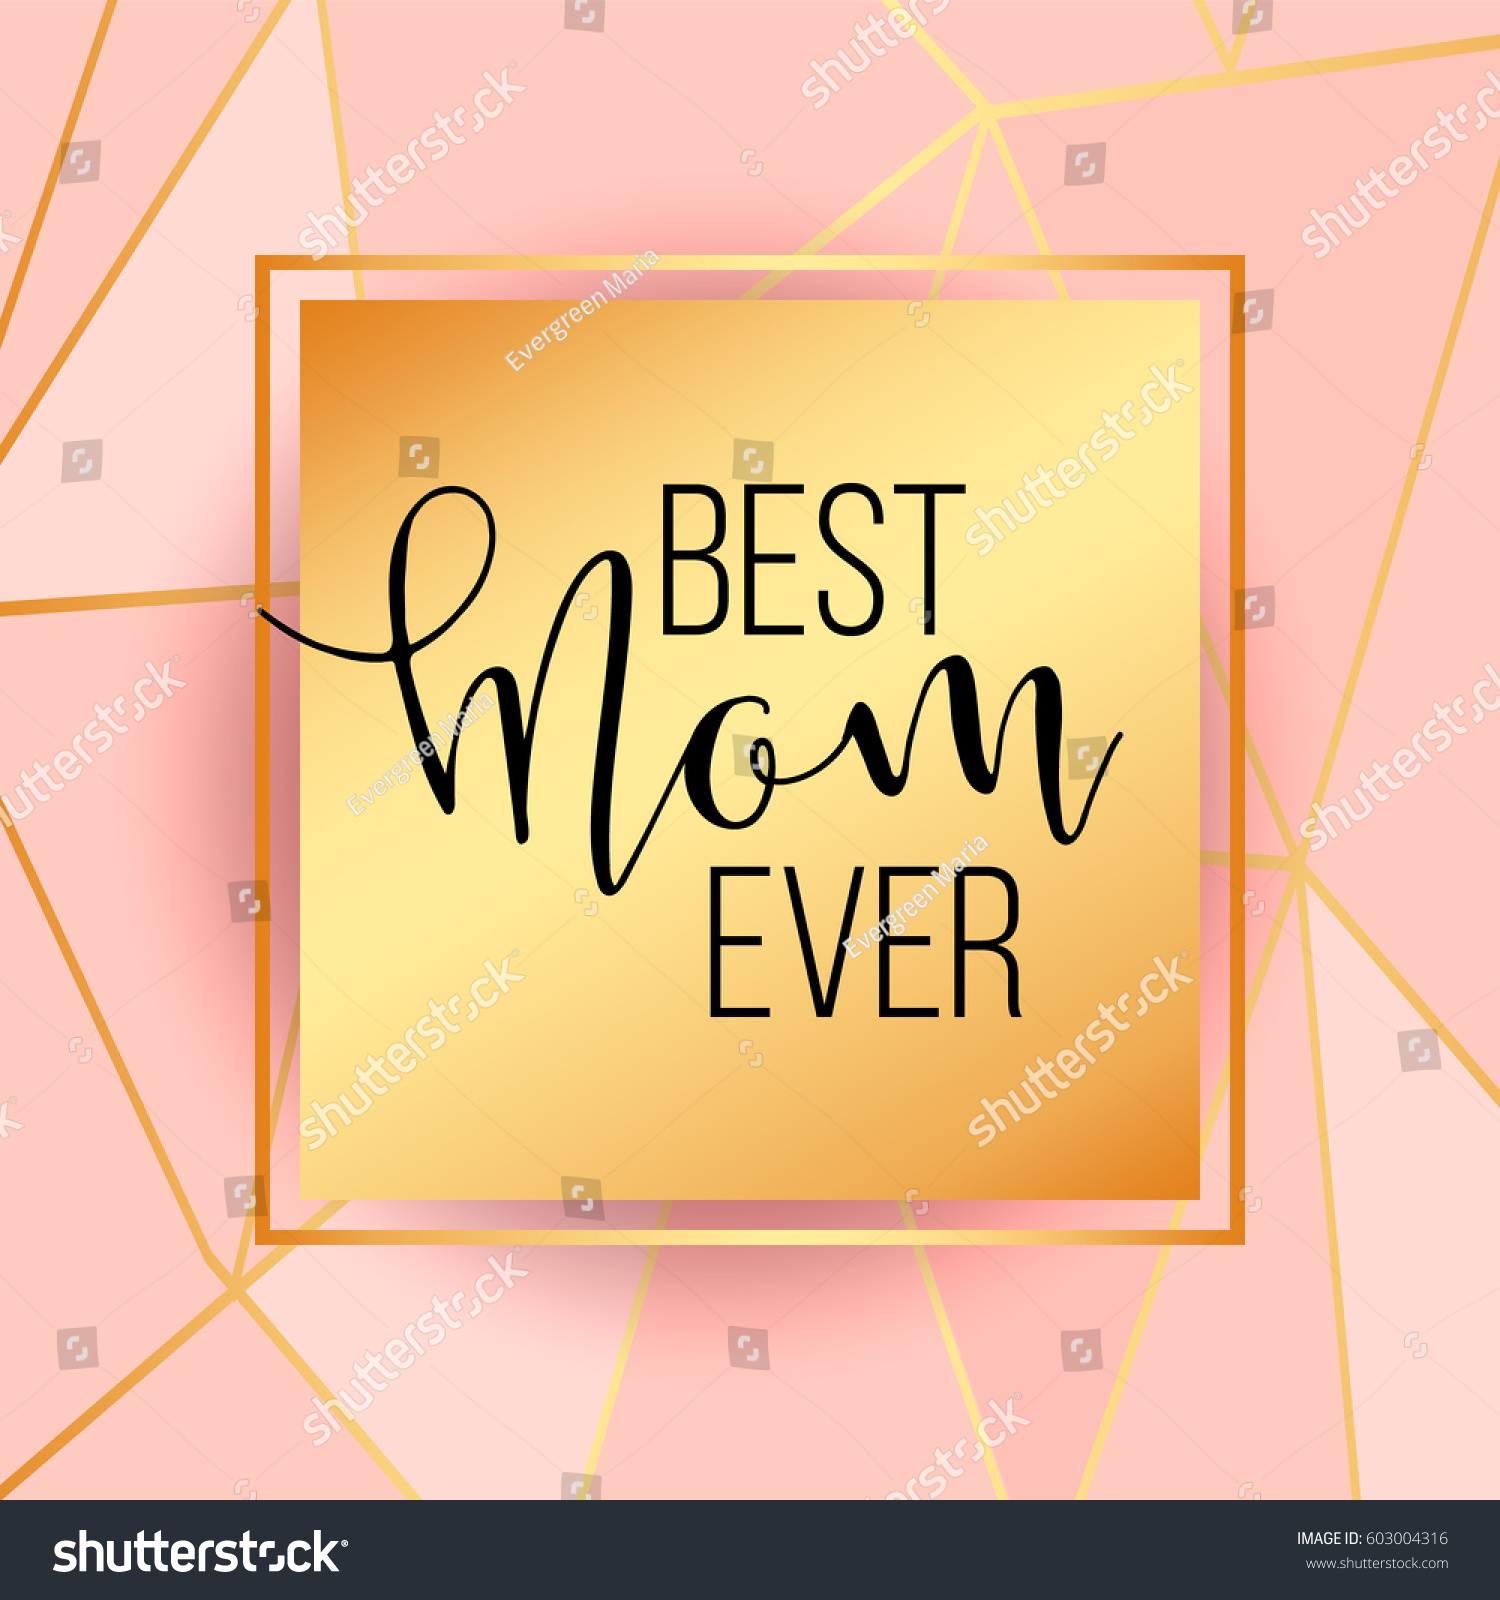 Best Mom Mum Ever Pink Background Stock Vector